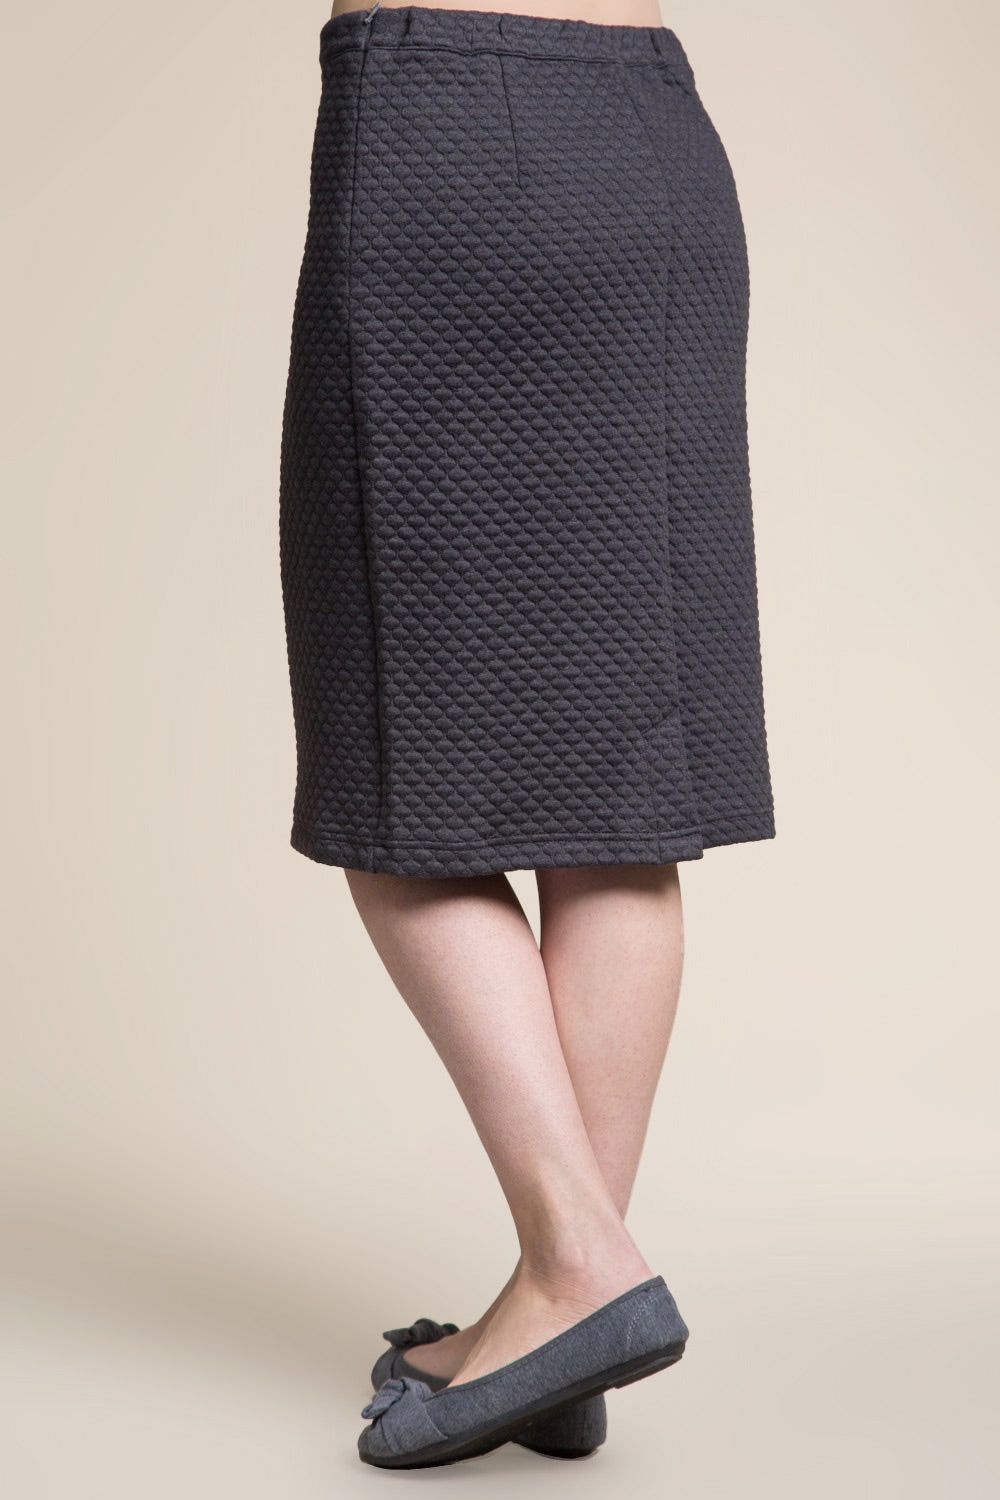 Type 2 Soft Impressions Skirt